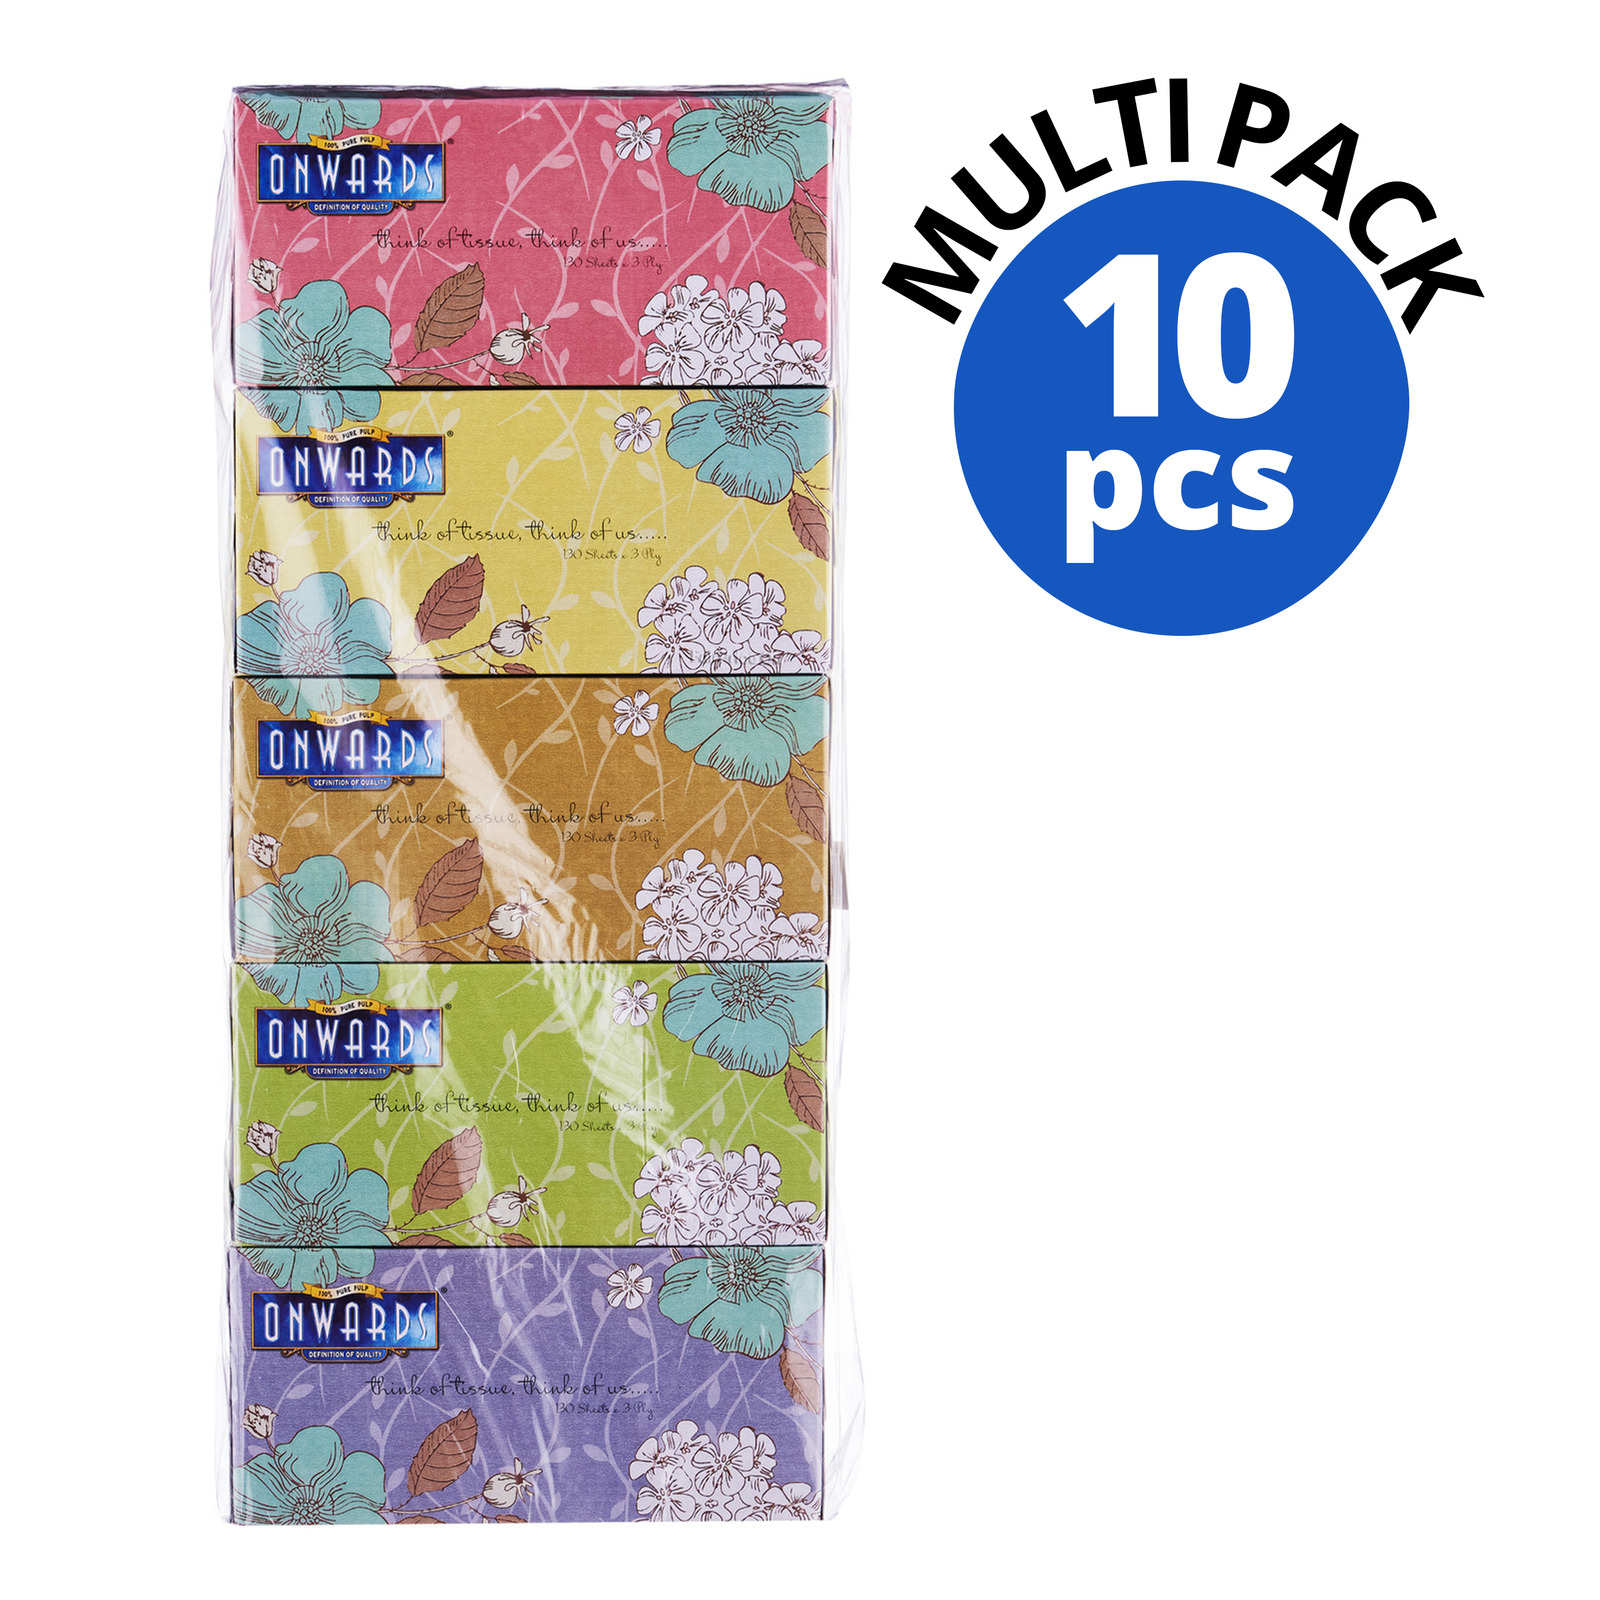 FairPrice Onwards Facial Tissues (3 Ply)